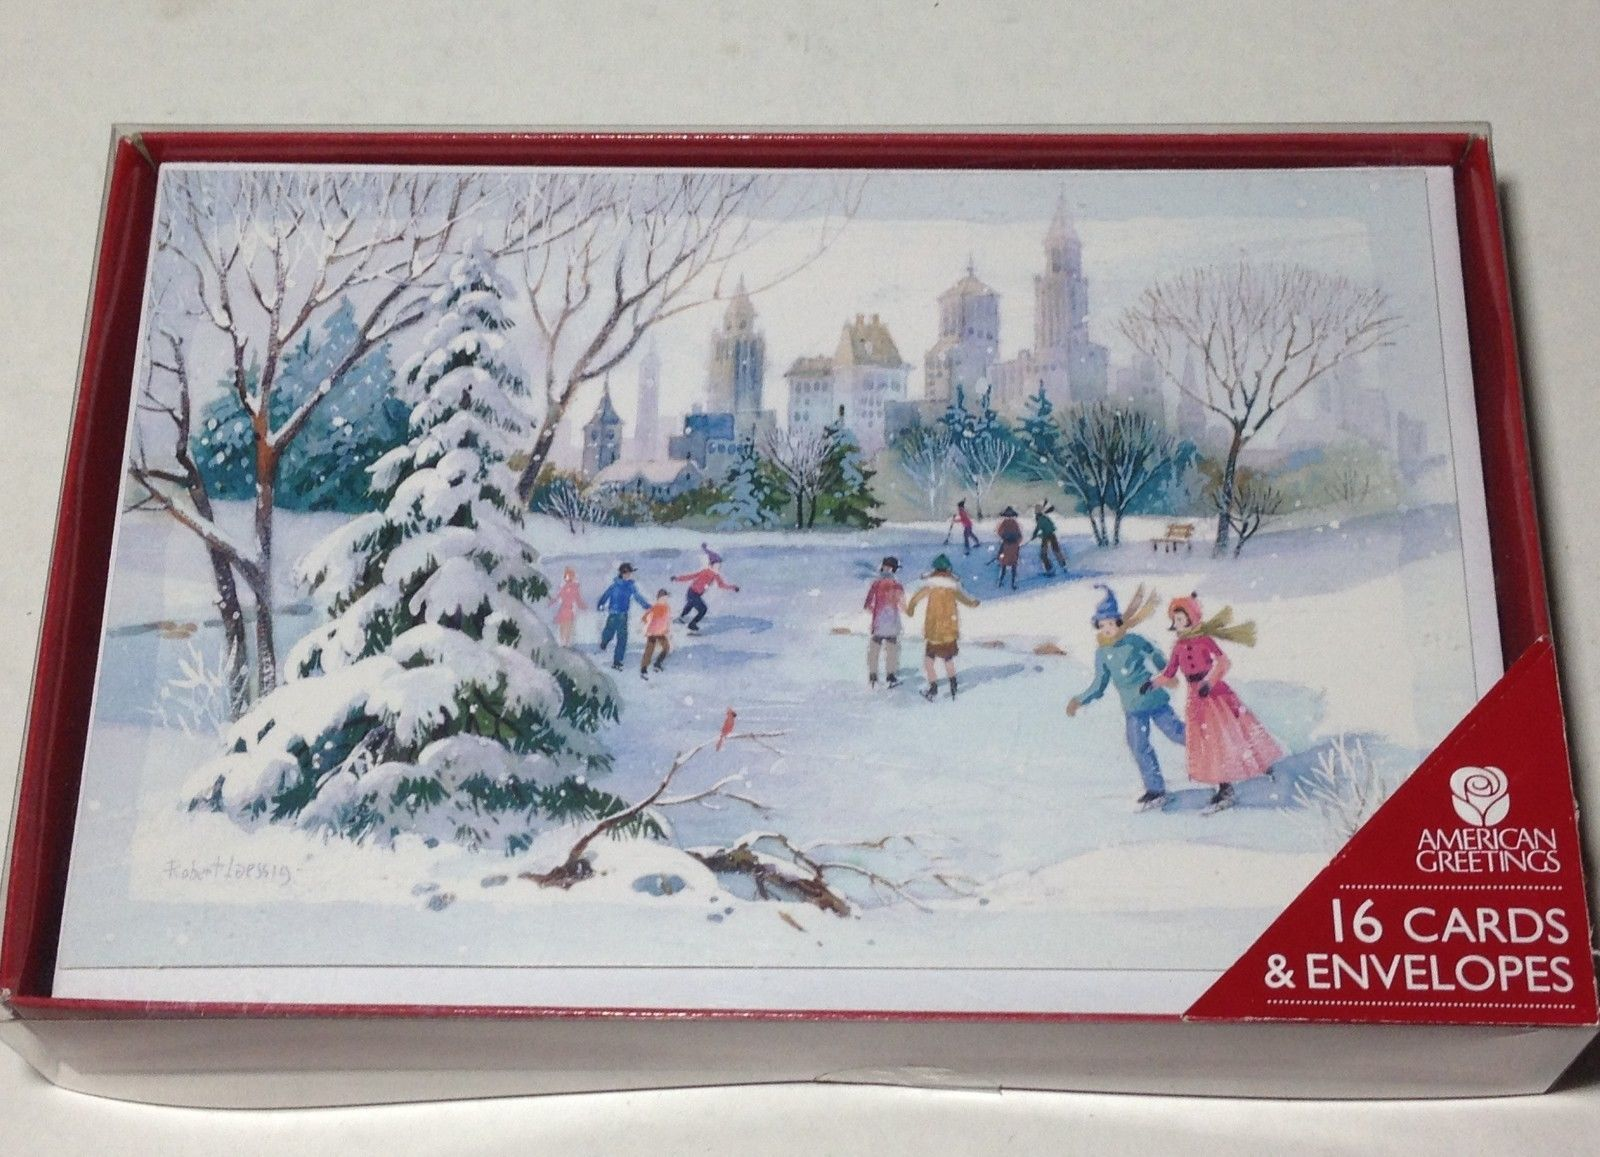 American greetings christmas card 8 listings american greetings christmas cards and envelopes 16 pcs winter snow with verse 500 m4hsunfo